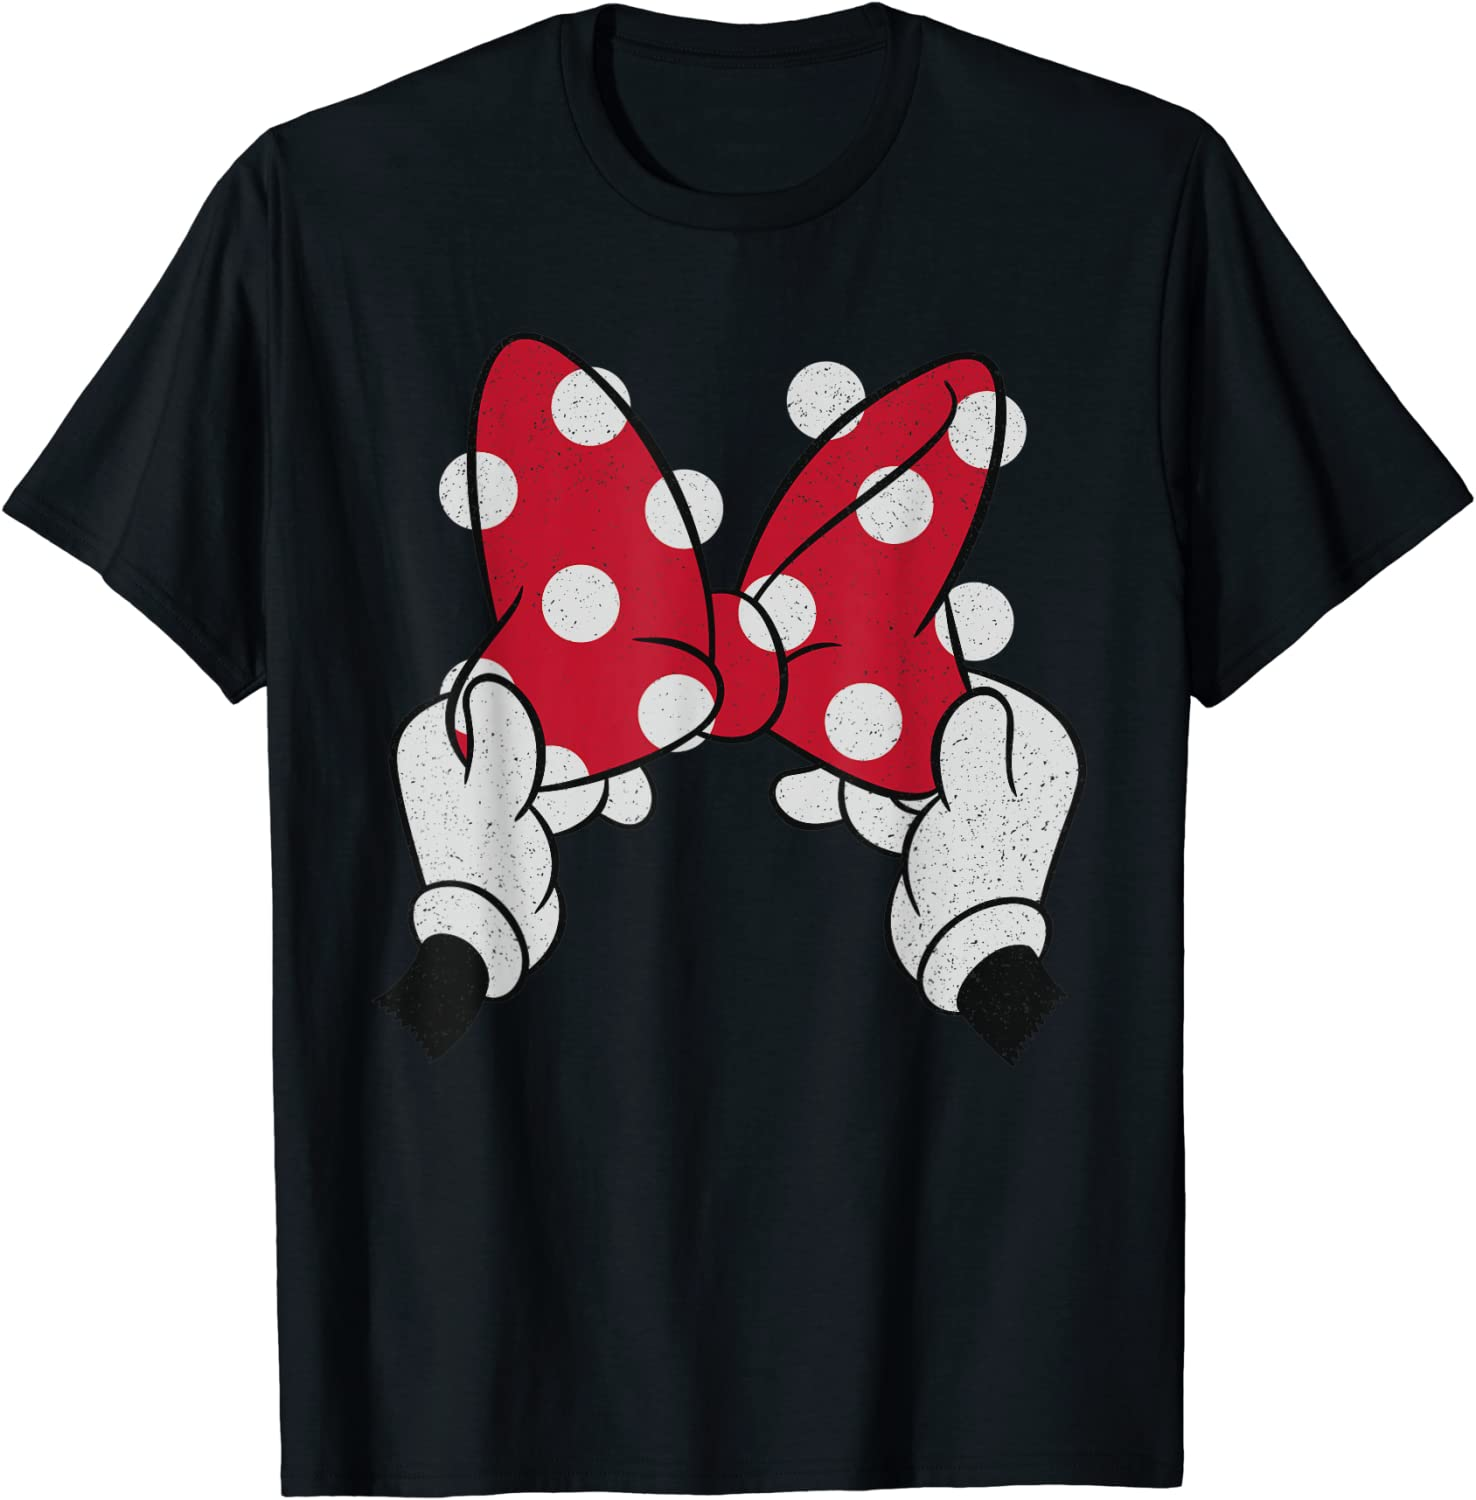 Disney Minnie Mouse's Red Polka Dot Bow T-Shirt